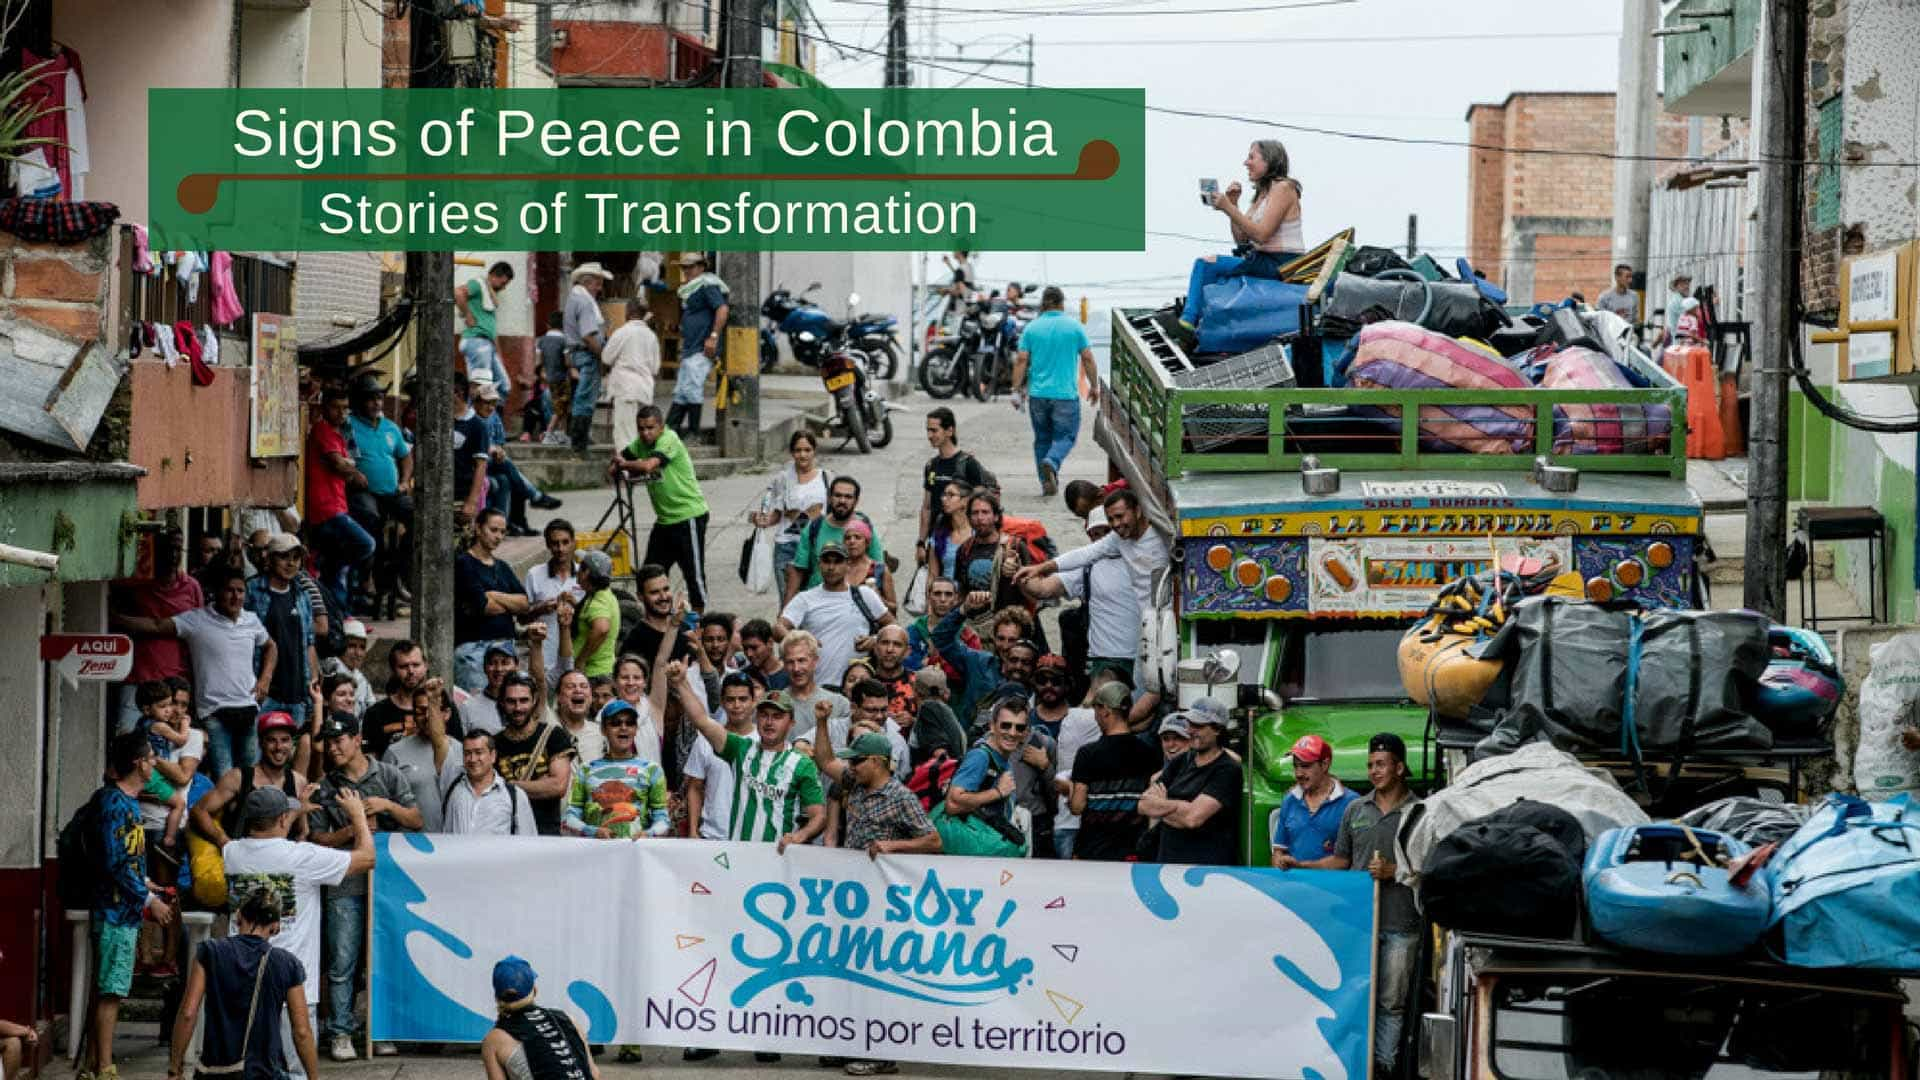 Signs Of Peace In Colombia: Stories Of Transformation